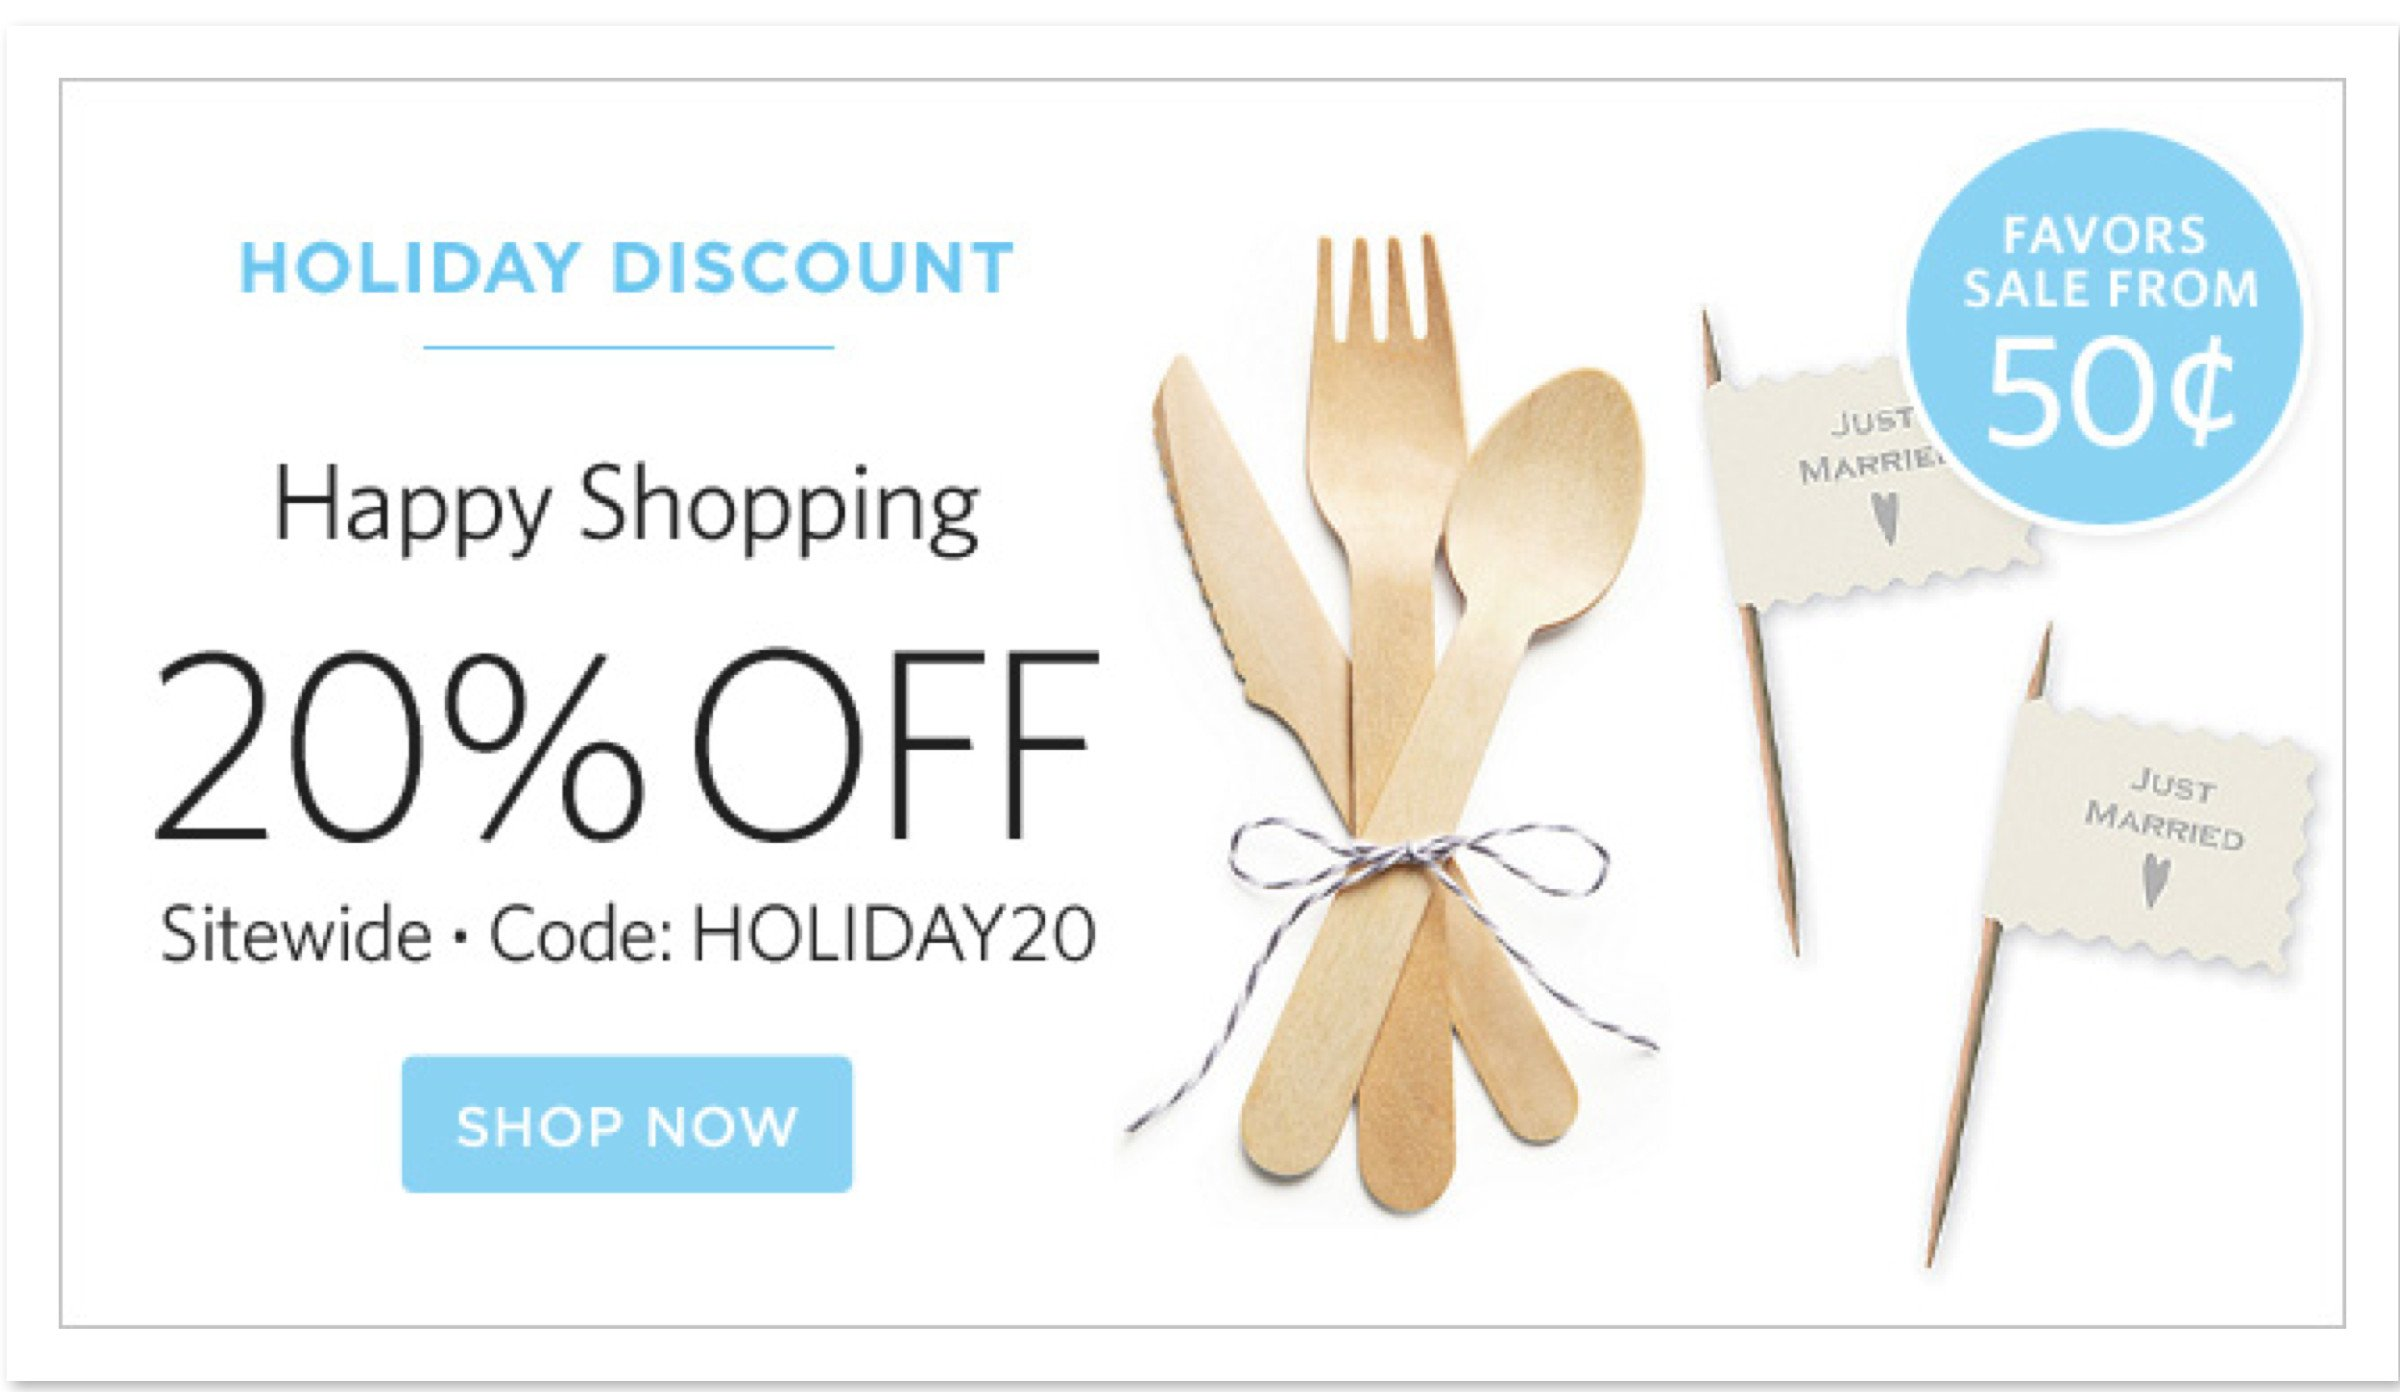 Shop The Knot Labor Day 20% OFF Sale!  Use Promo Code HOLIDAY20